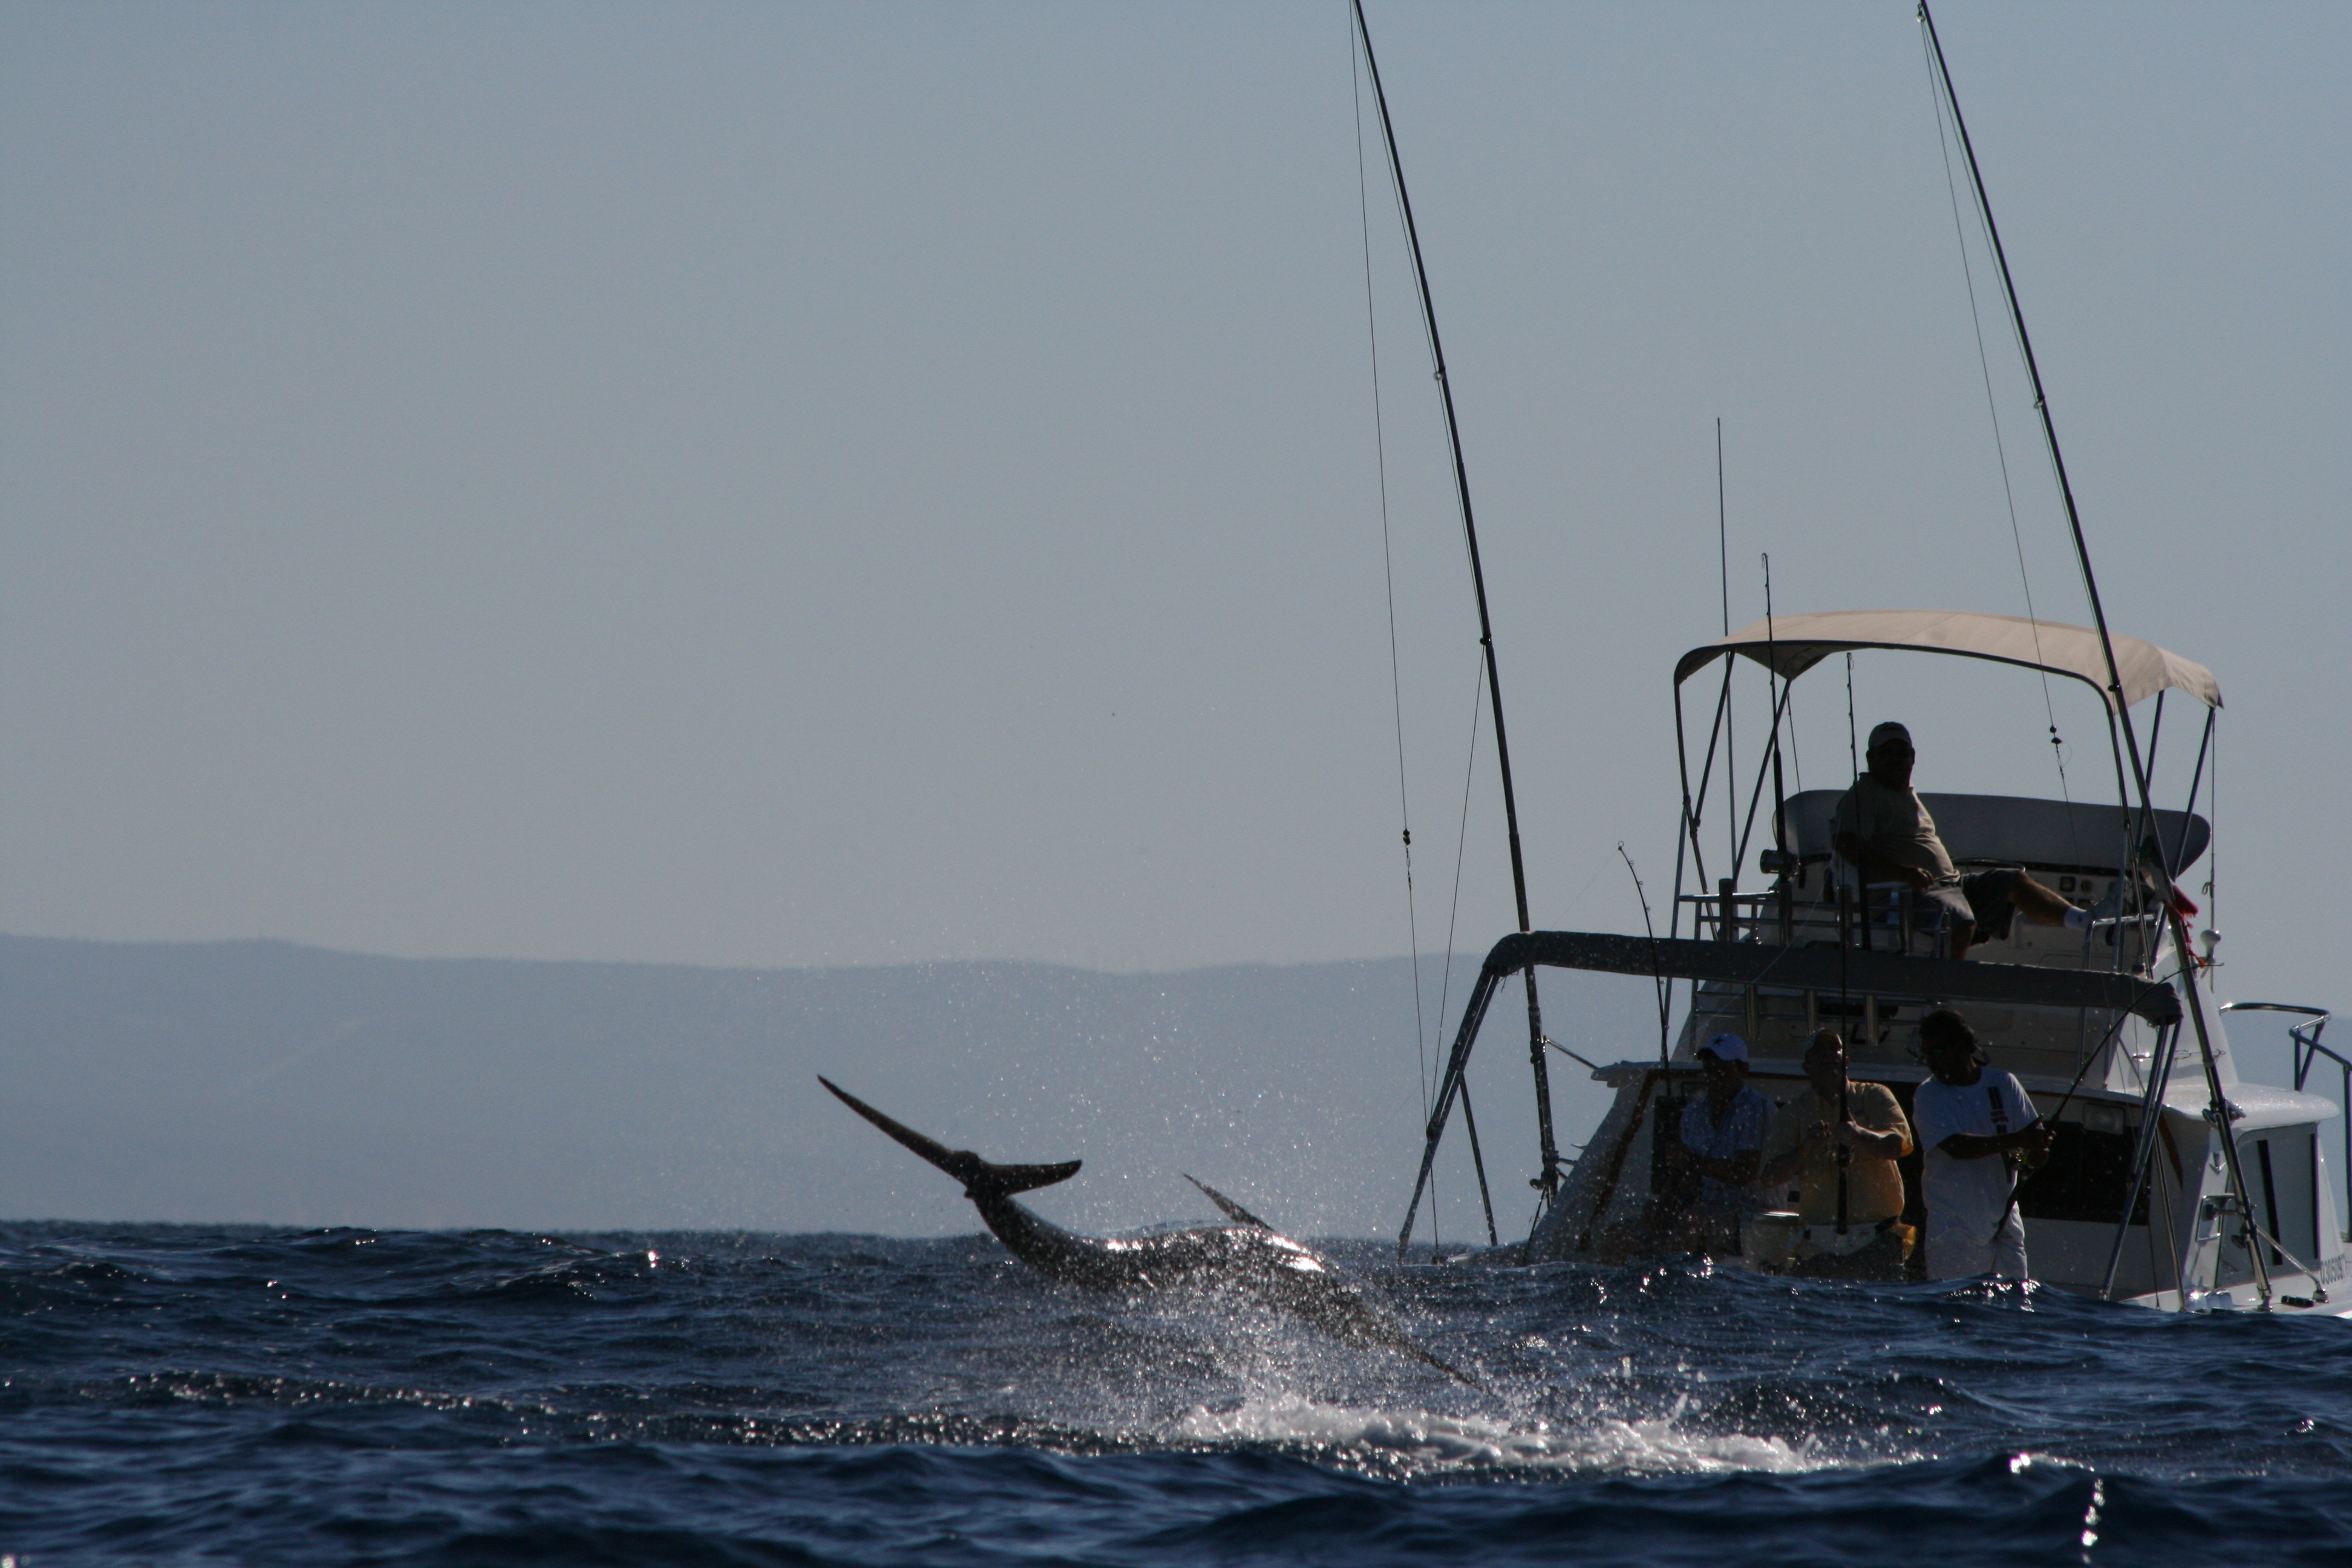 Marlin at Golden Gate Cabo